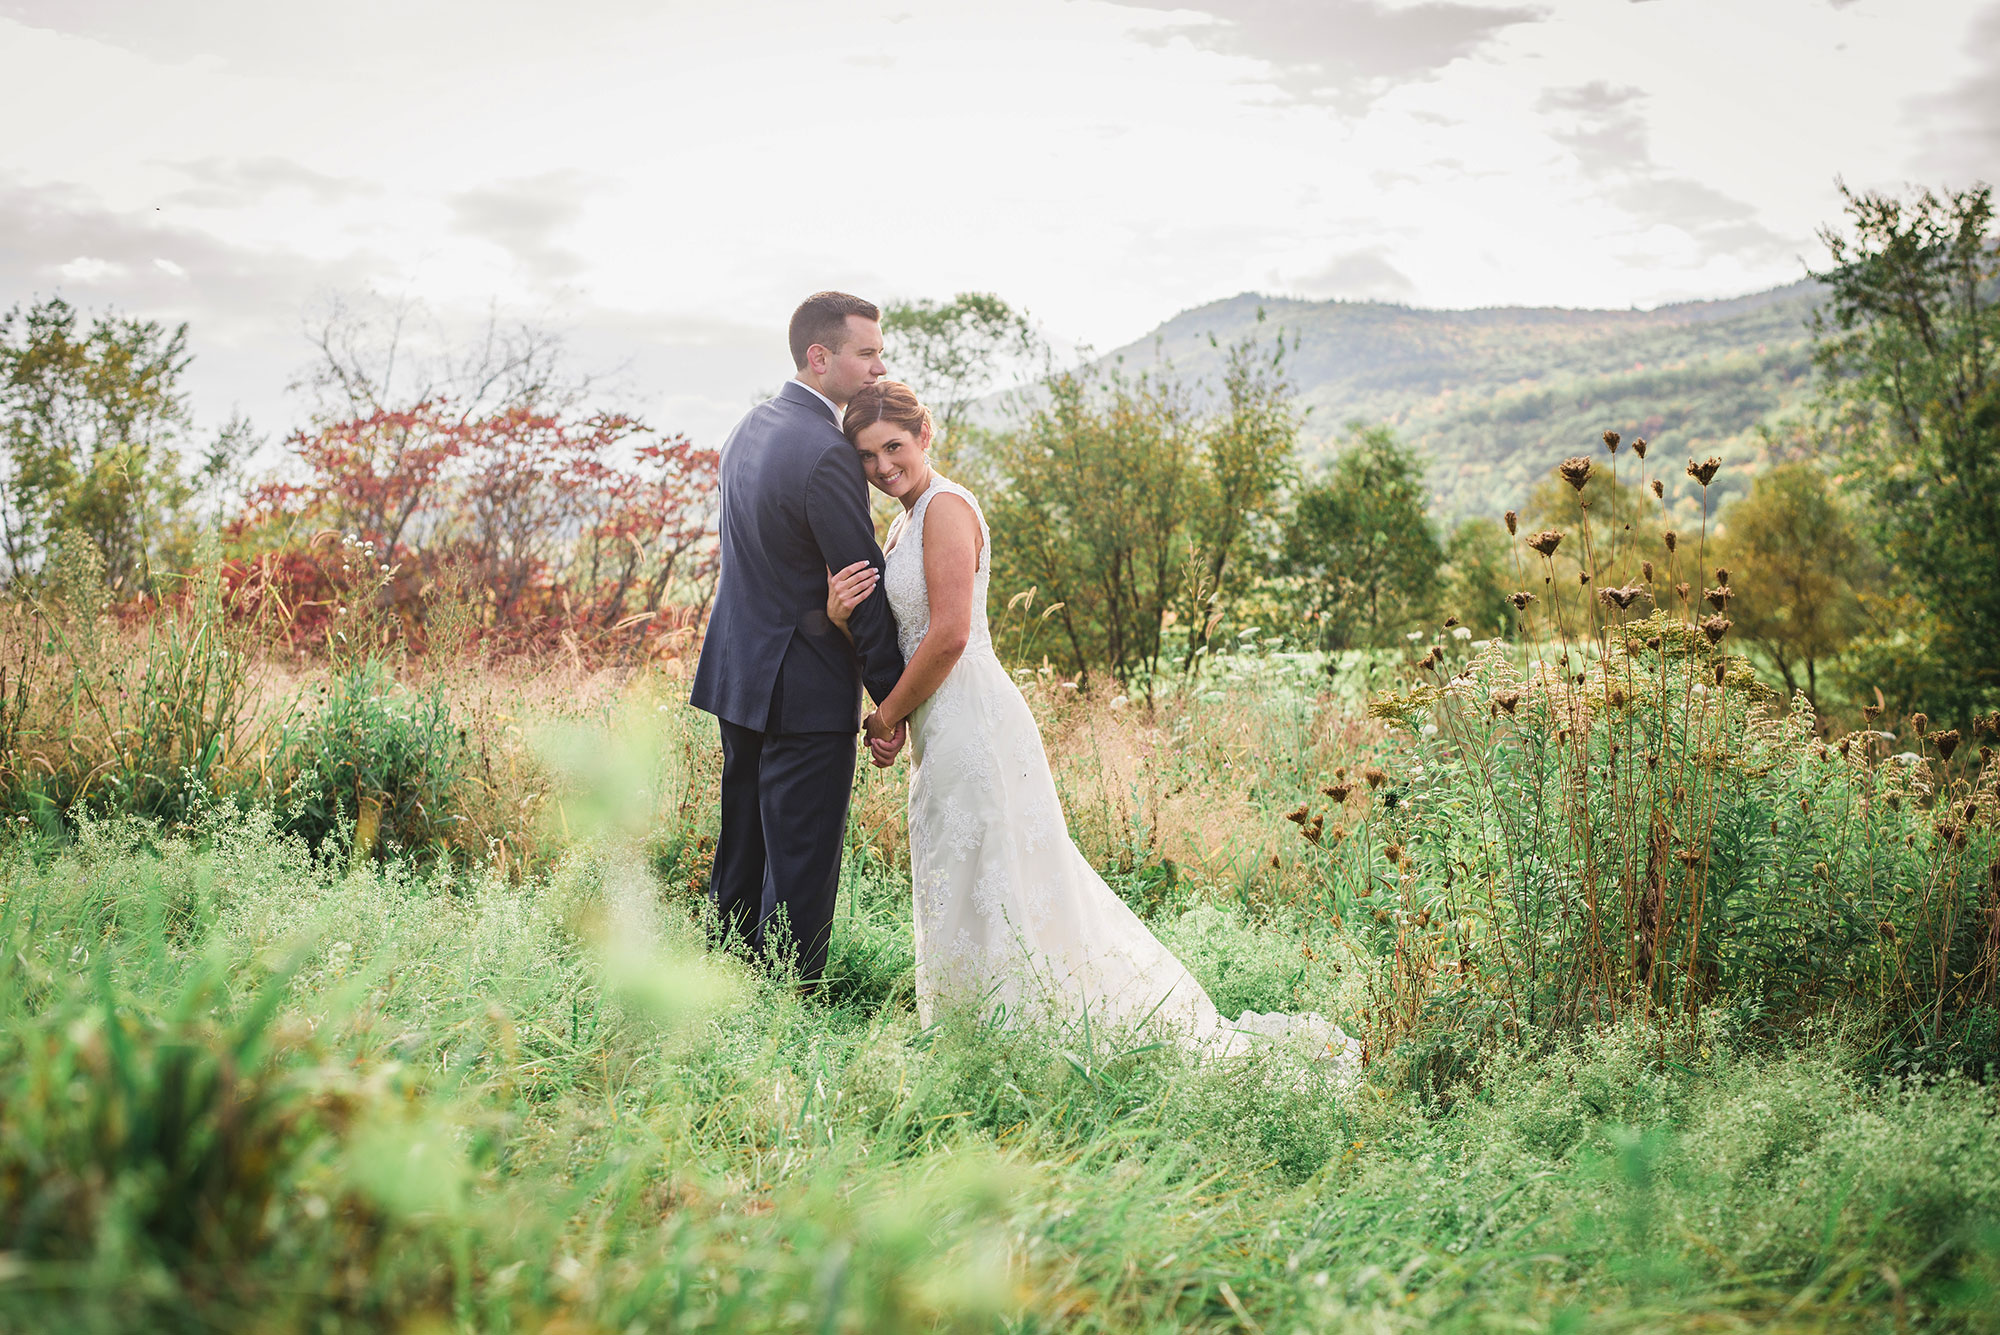 wild_green_meadow_wedding_portrait.jpg